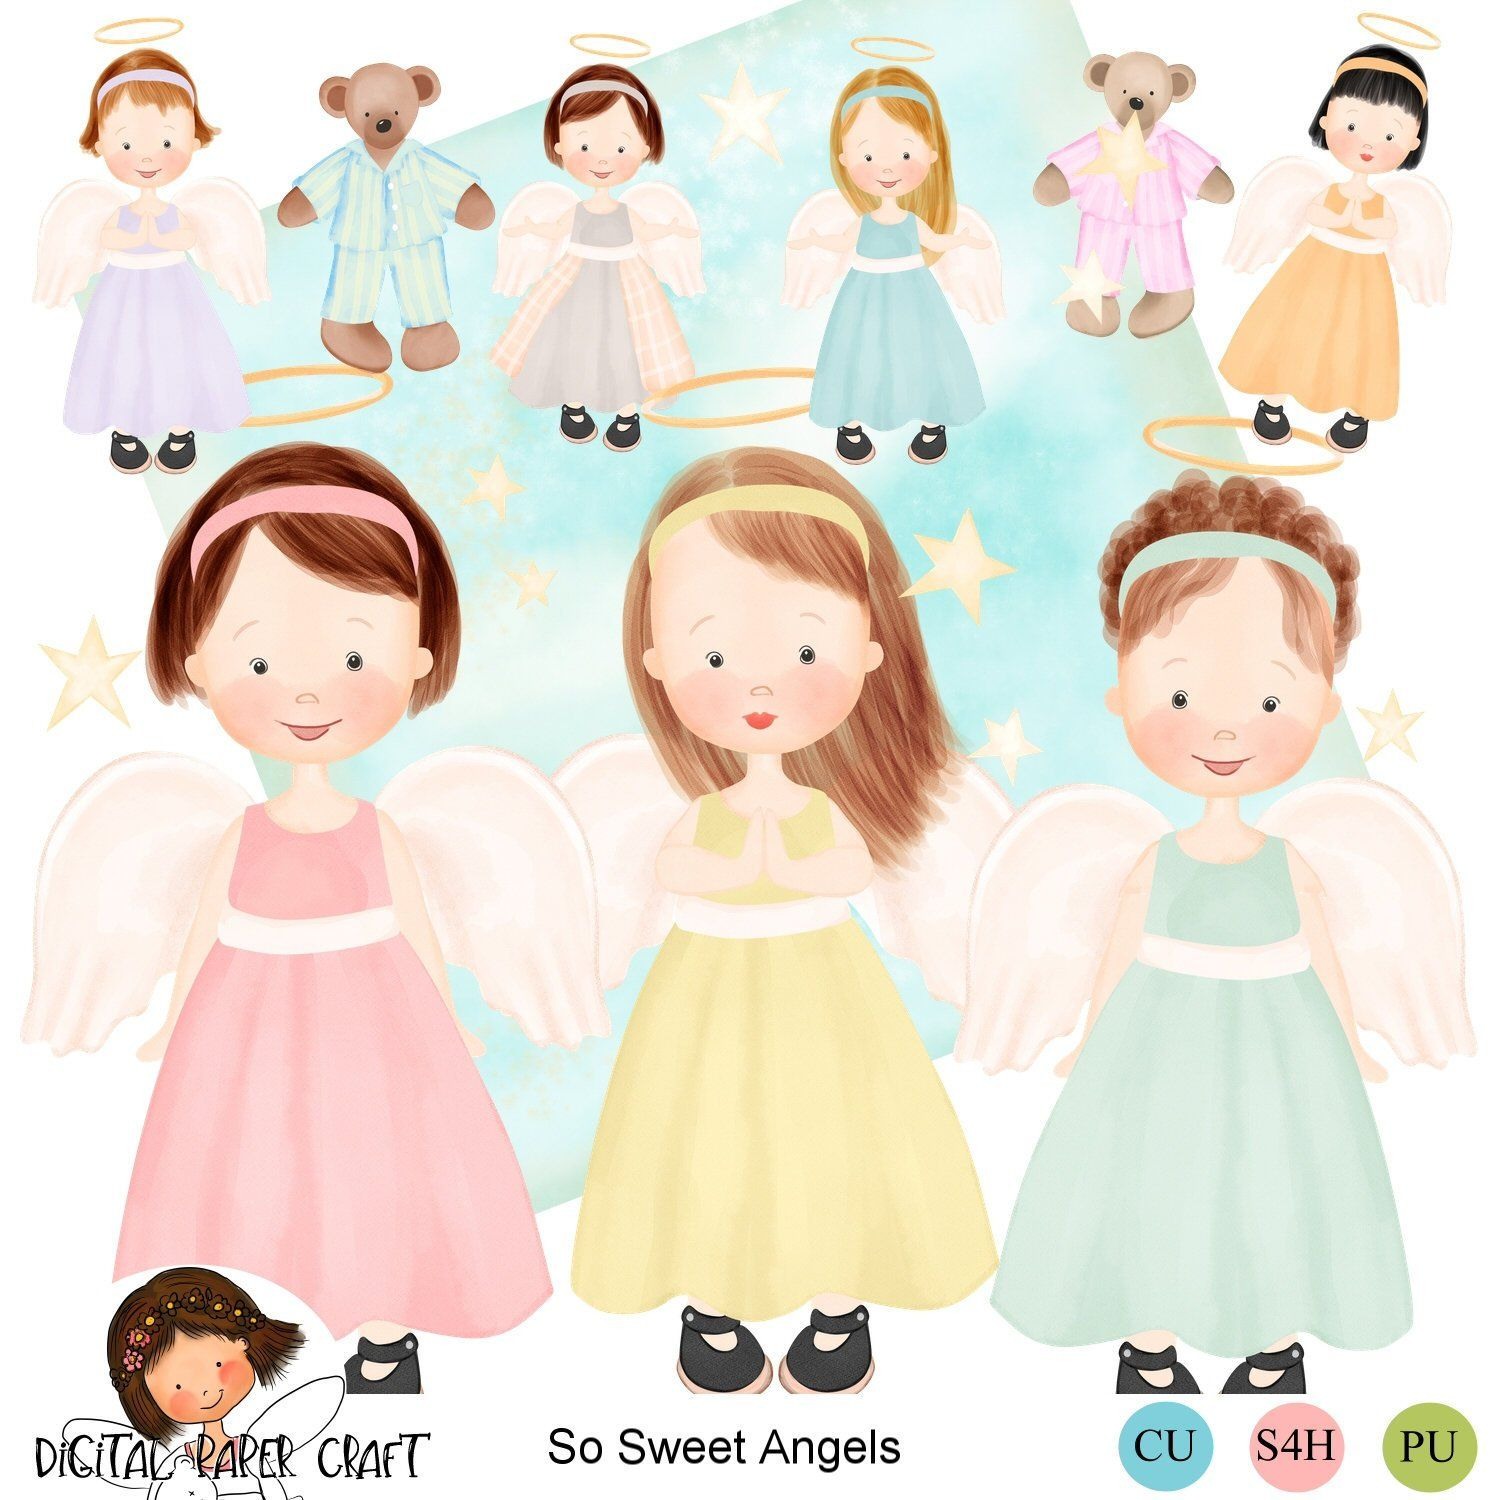 angel clipart watercolor angel christian clipart girl clipart hand painted original [ 1500 x 1500 Pixel ]